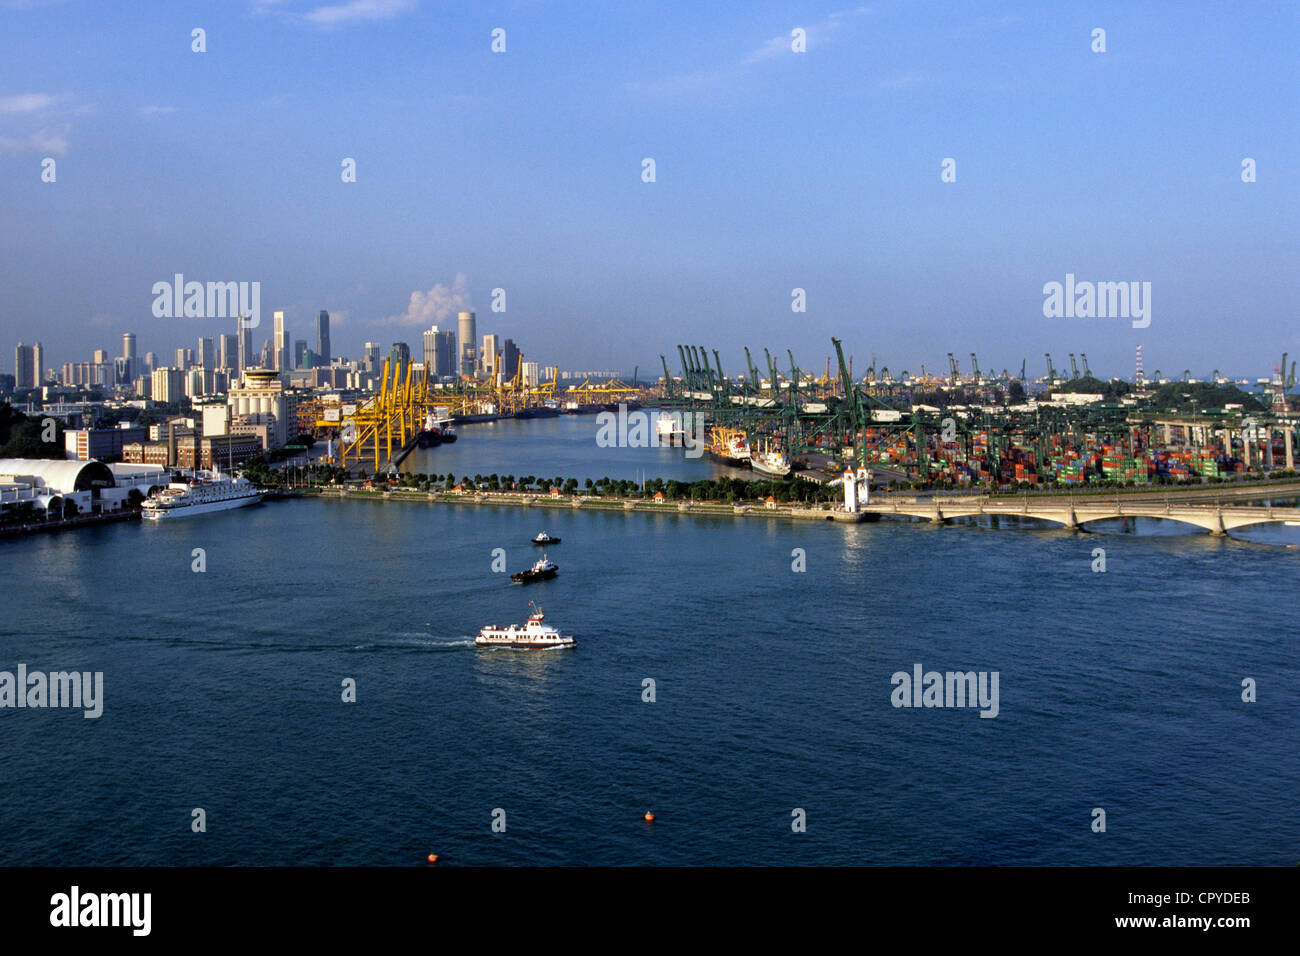 Singapore, Pulau Brani Island, Keppel commercial harbour - Stock Image